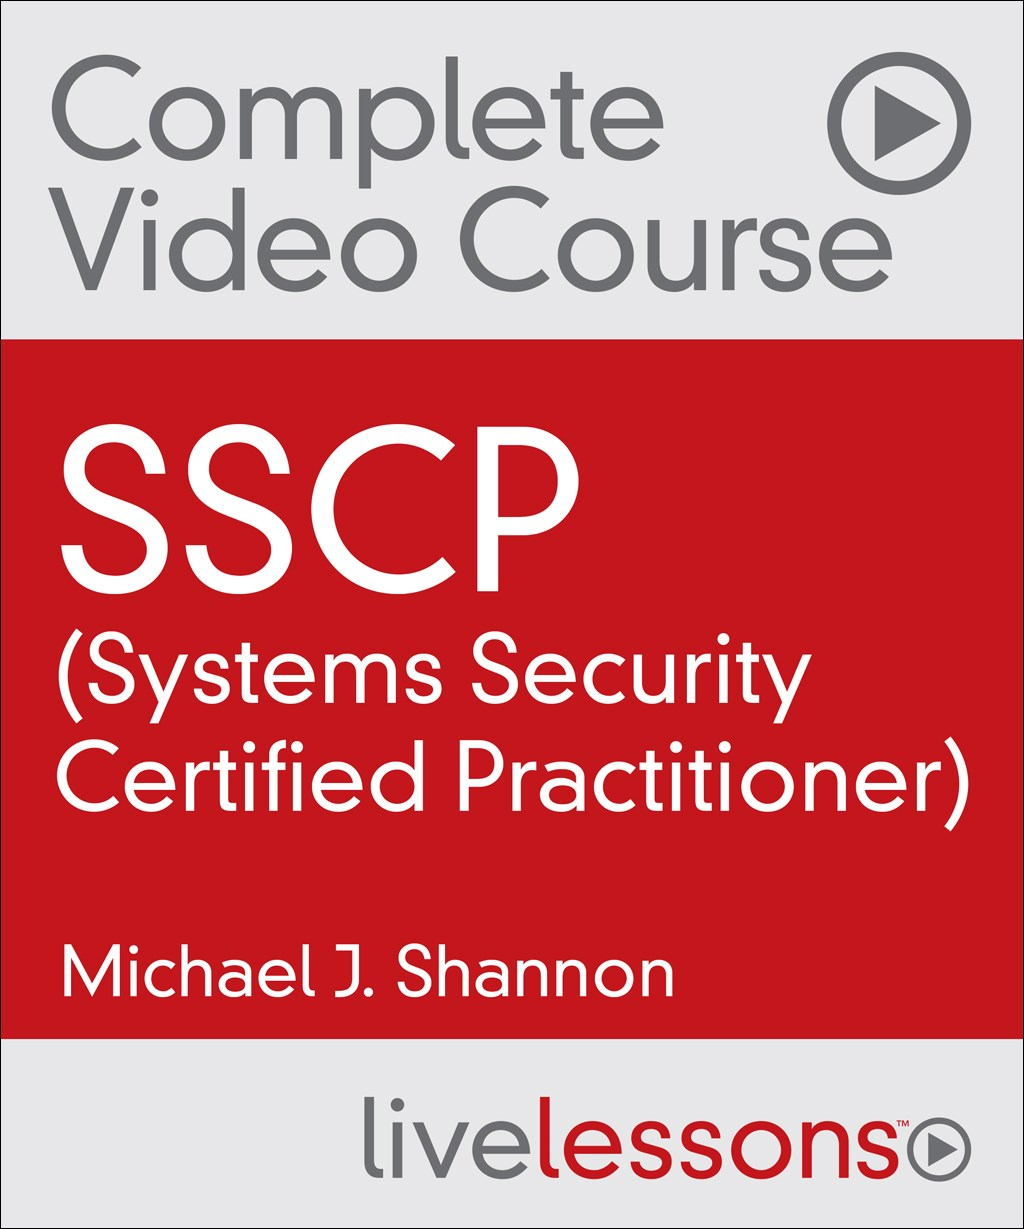 SSCP Complete Video Course and Practice Test